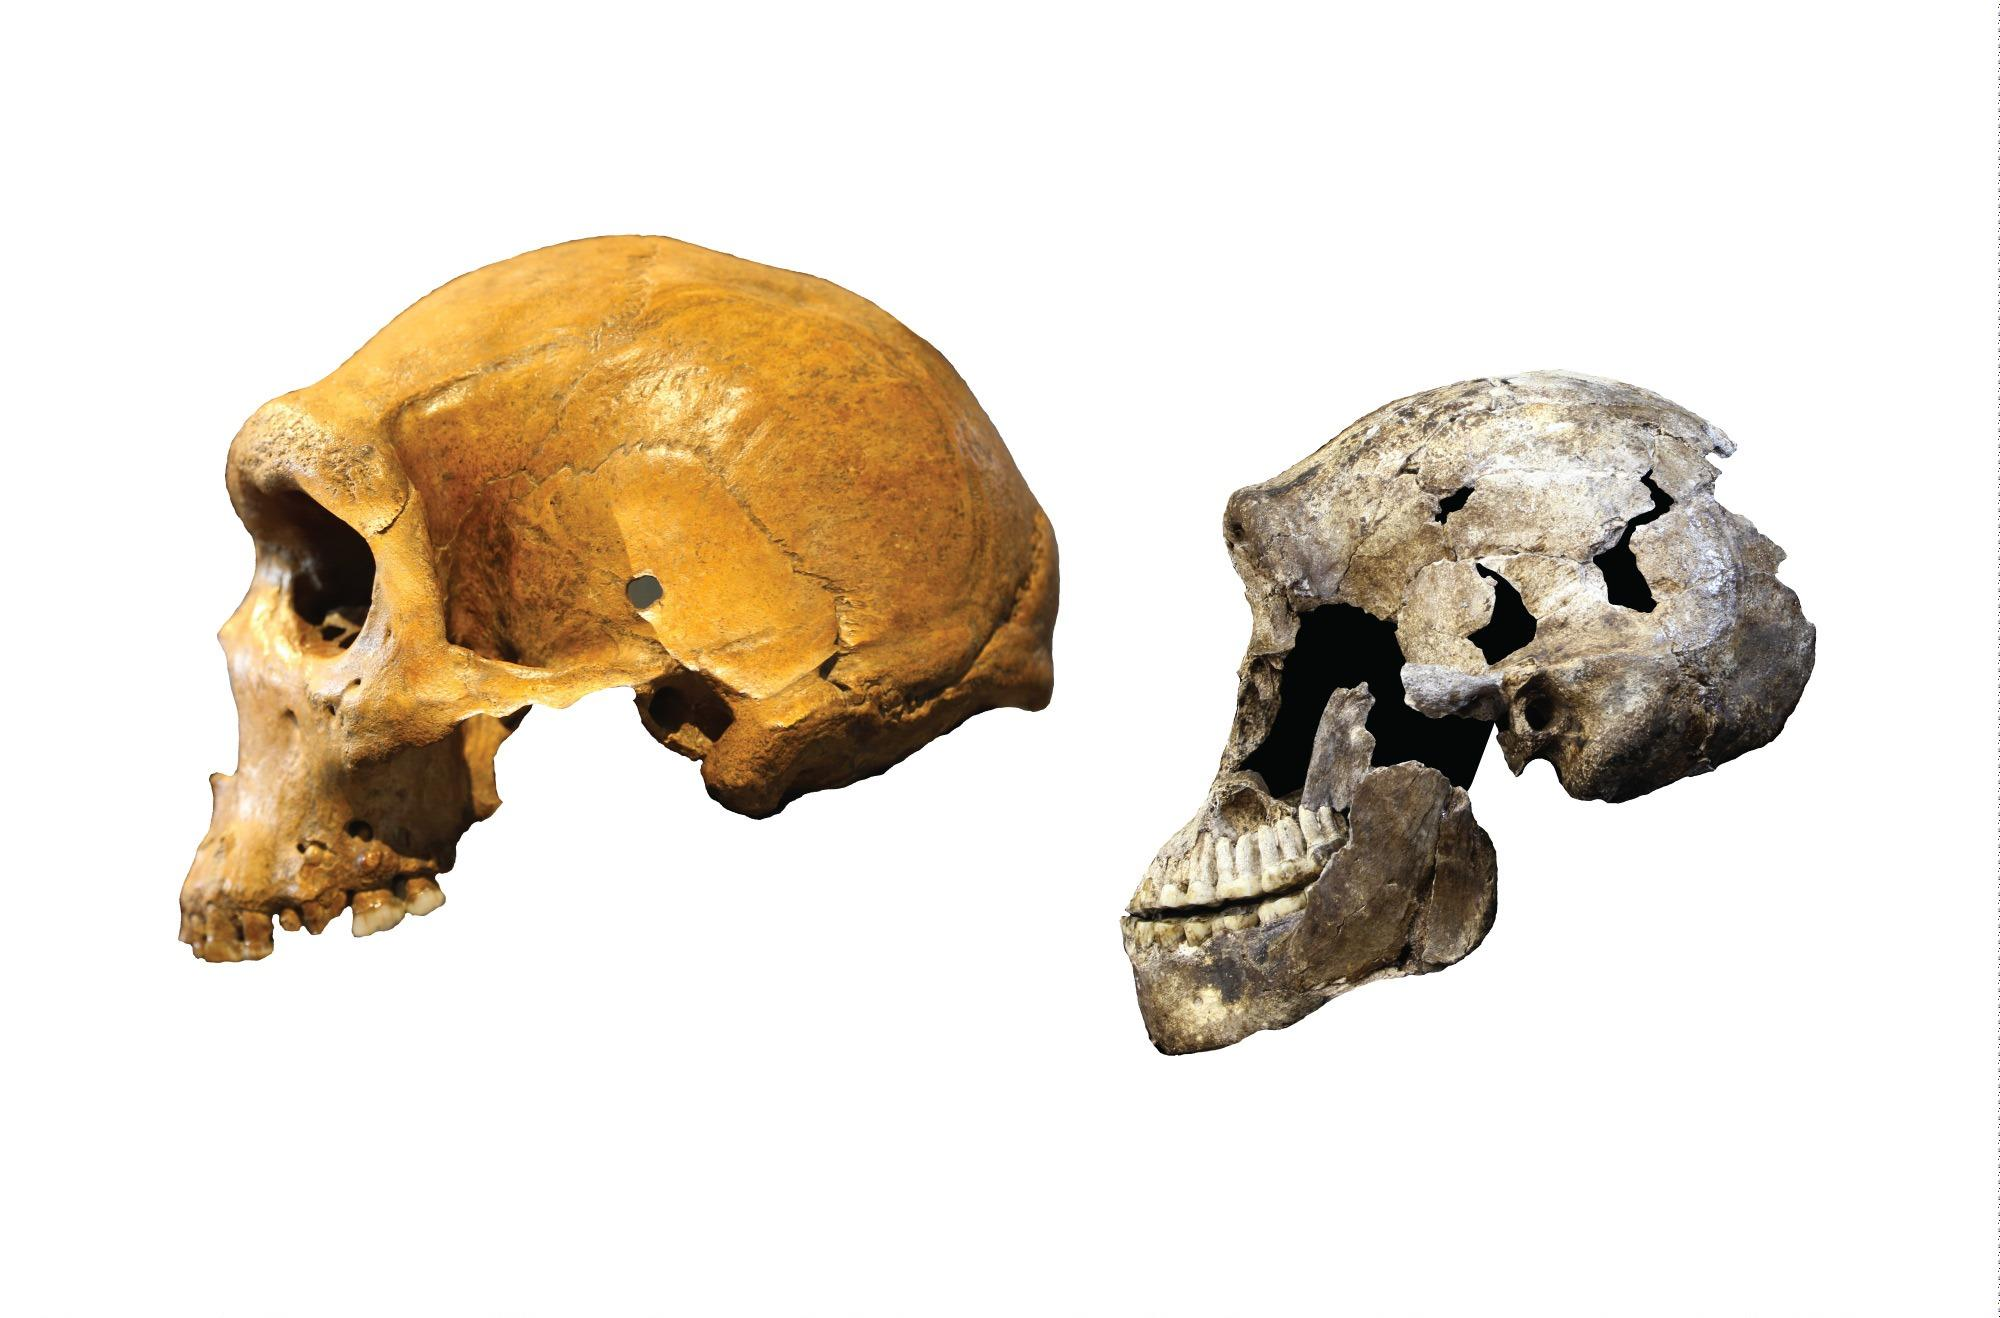 Scientists announce human fossil shows early diversity in 'Homo' family tree